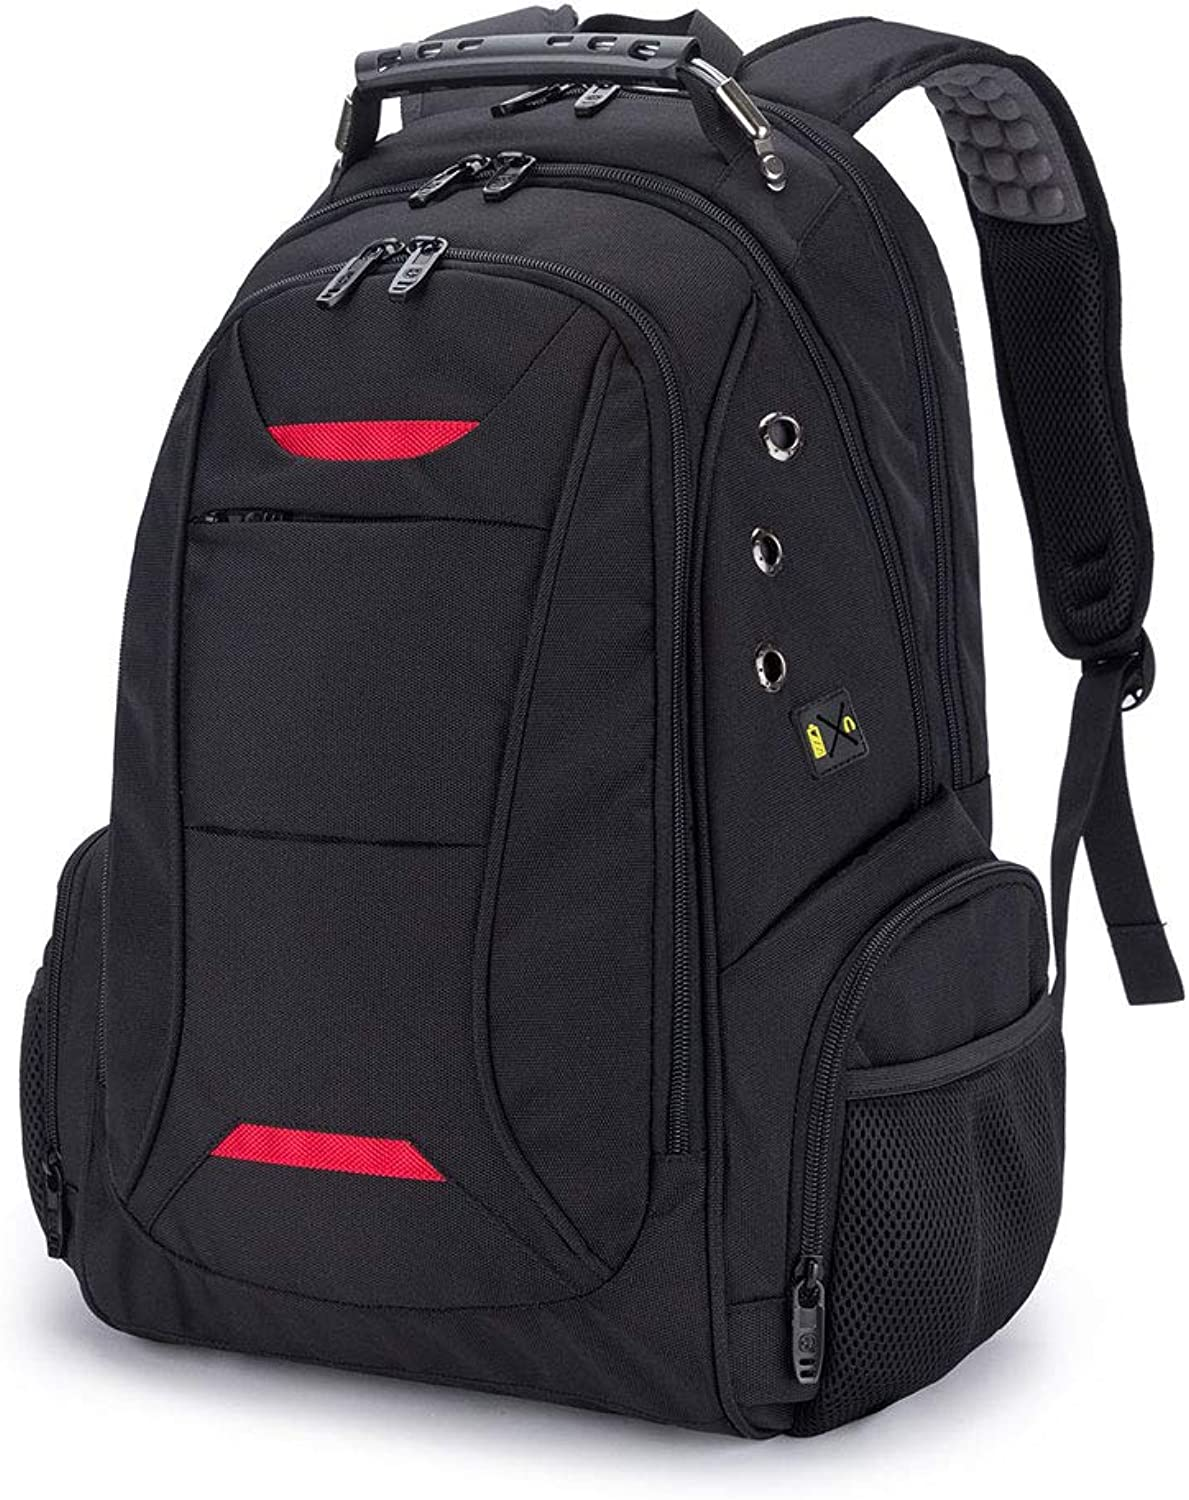 17 inch business computer bag large capacity travel backpack outdoor hiking backpack business casual bag